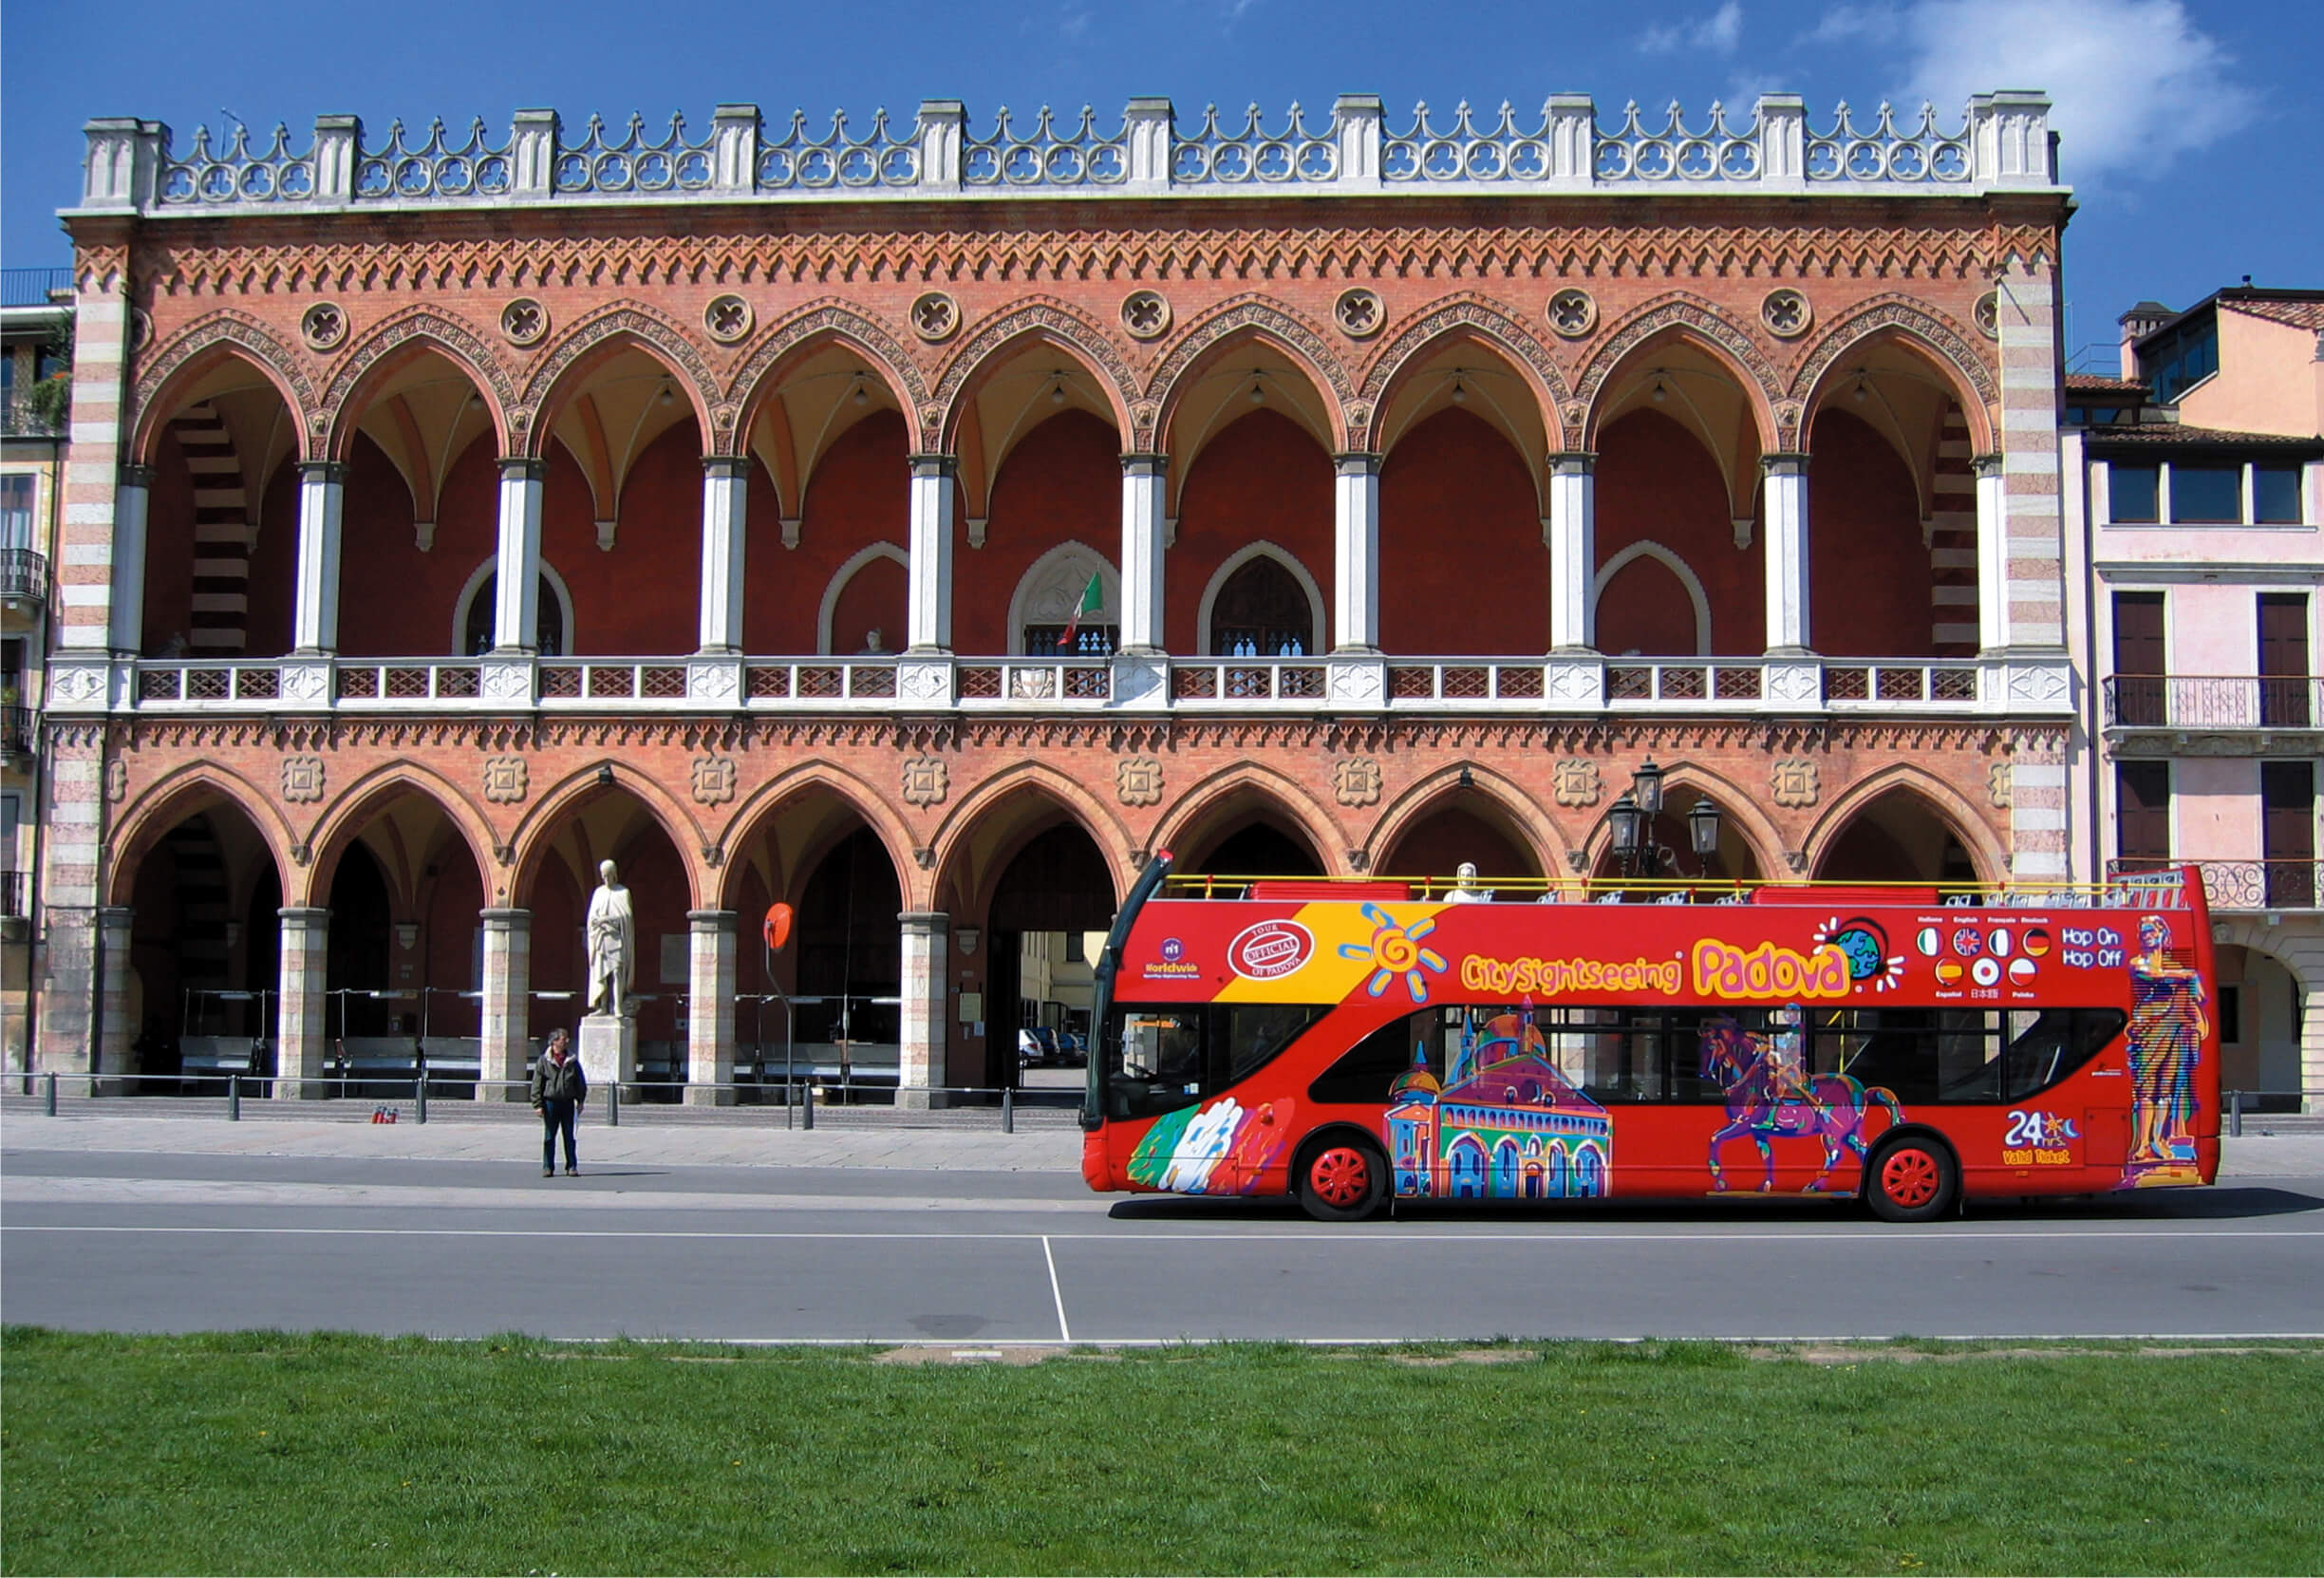 Padova Hop-on, Hop-off Bus Tour